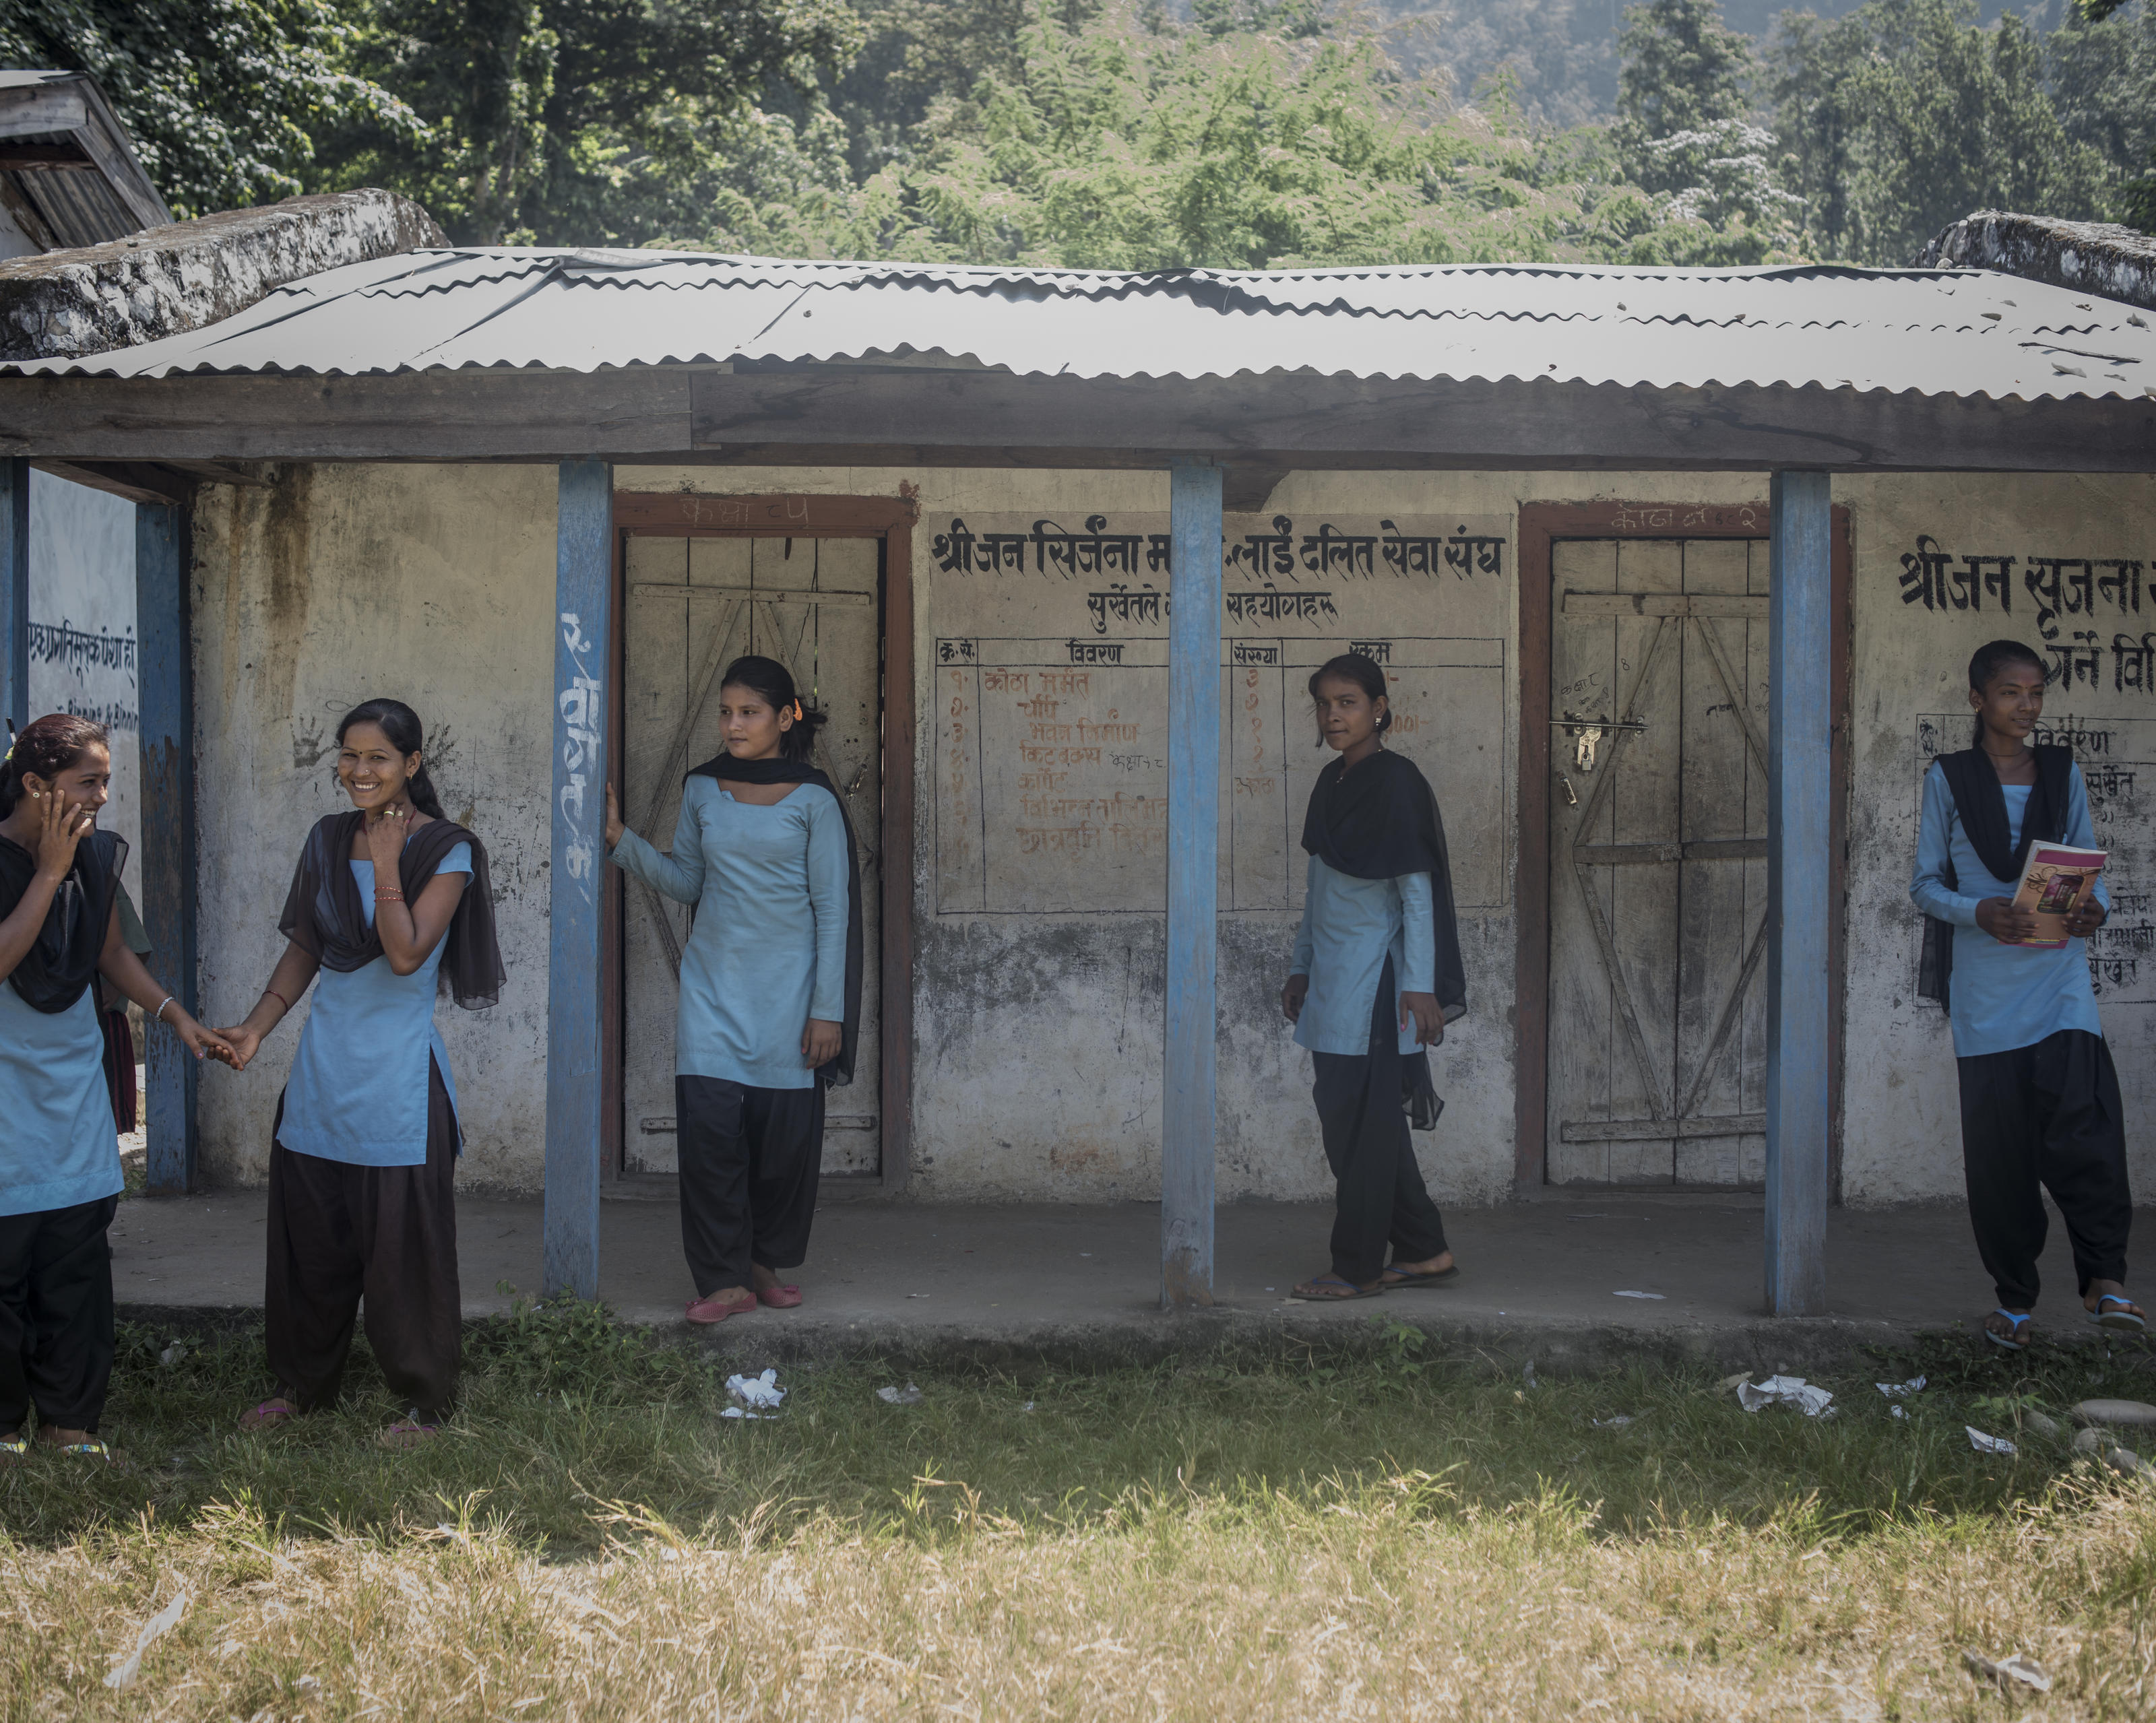 When your period means you have to live in a shed | WaterAid